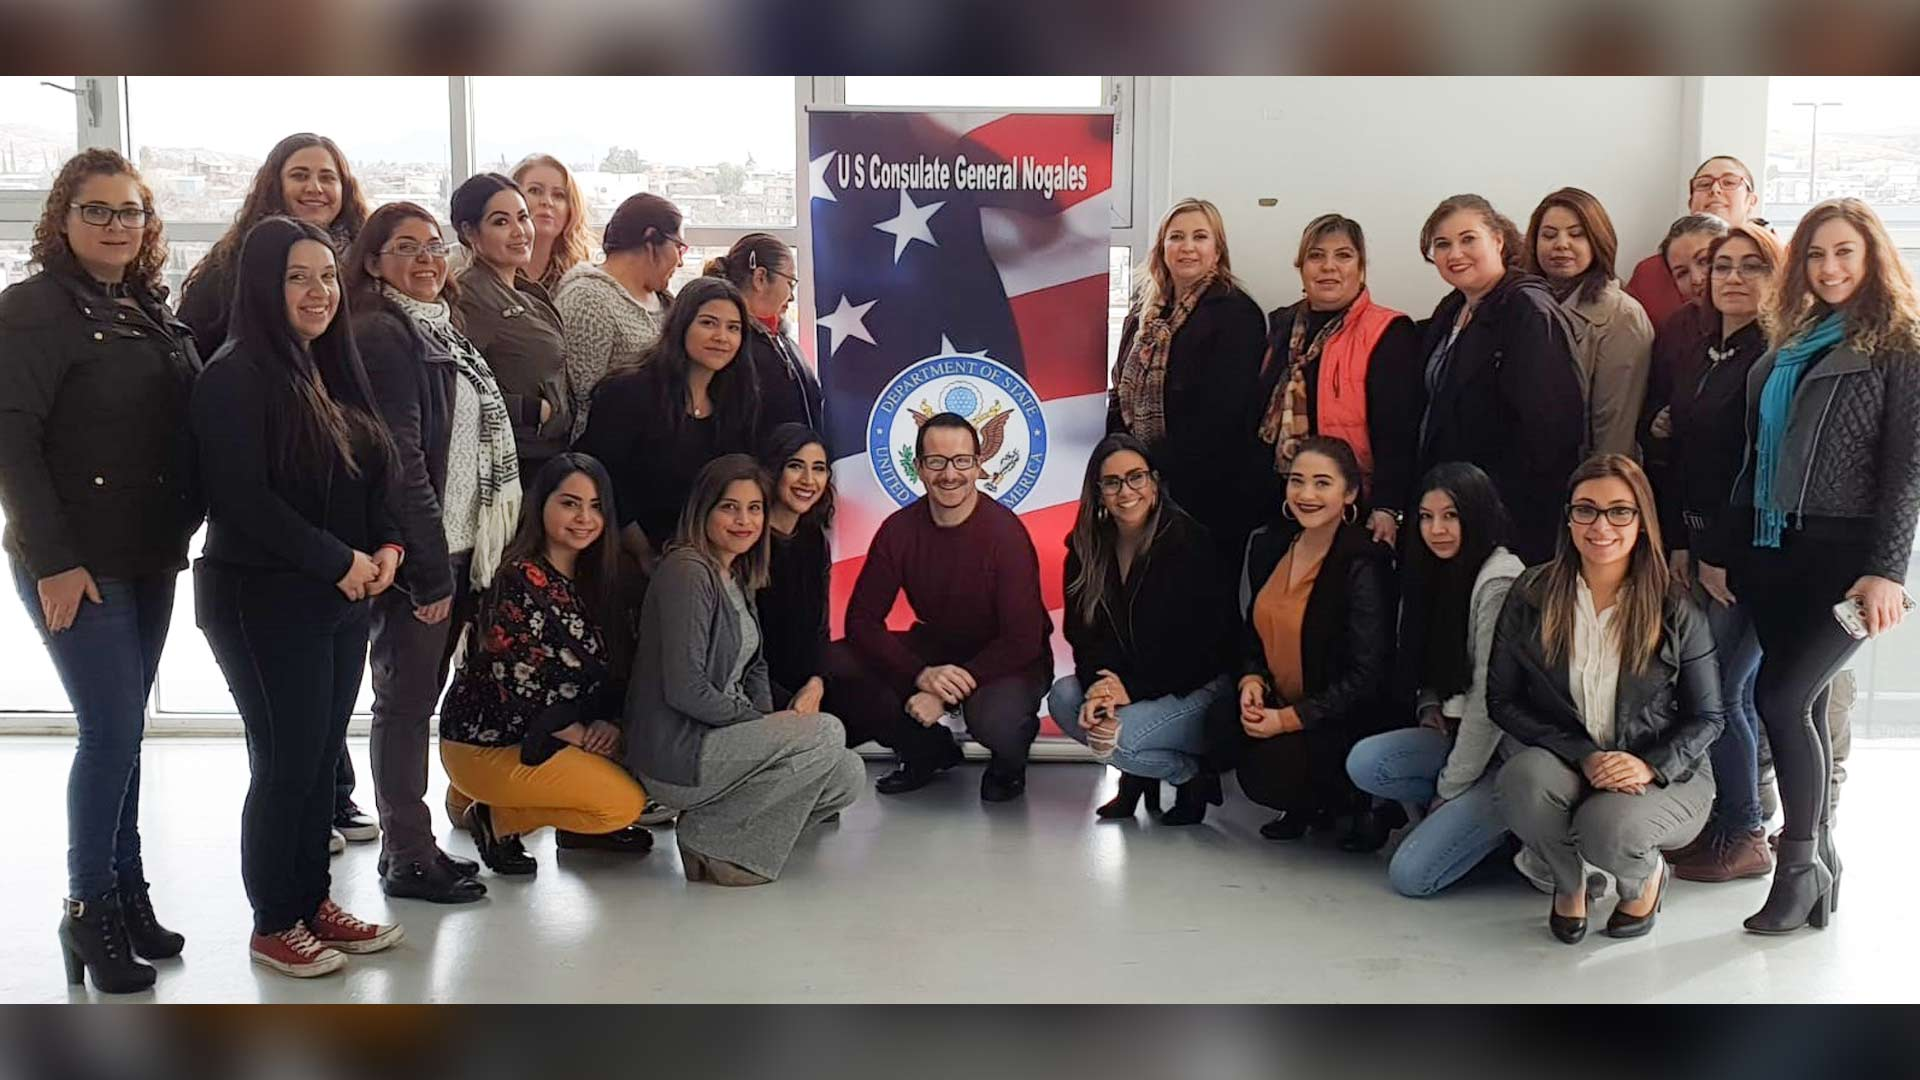 University of Arizona Professor Carlos Alsua with his McGuire Mexico Scholars class.